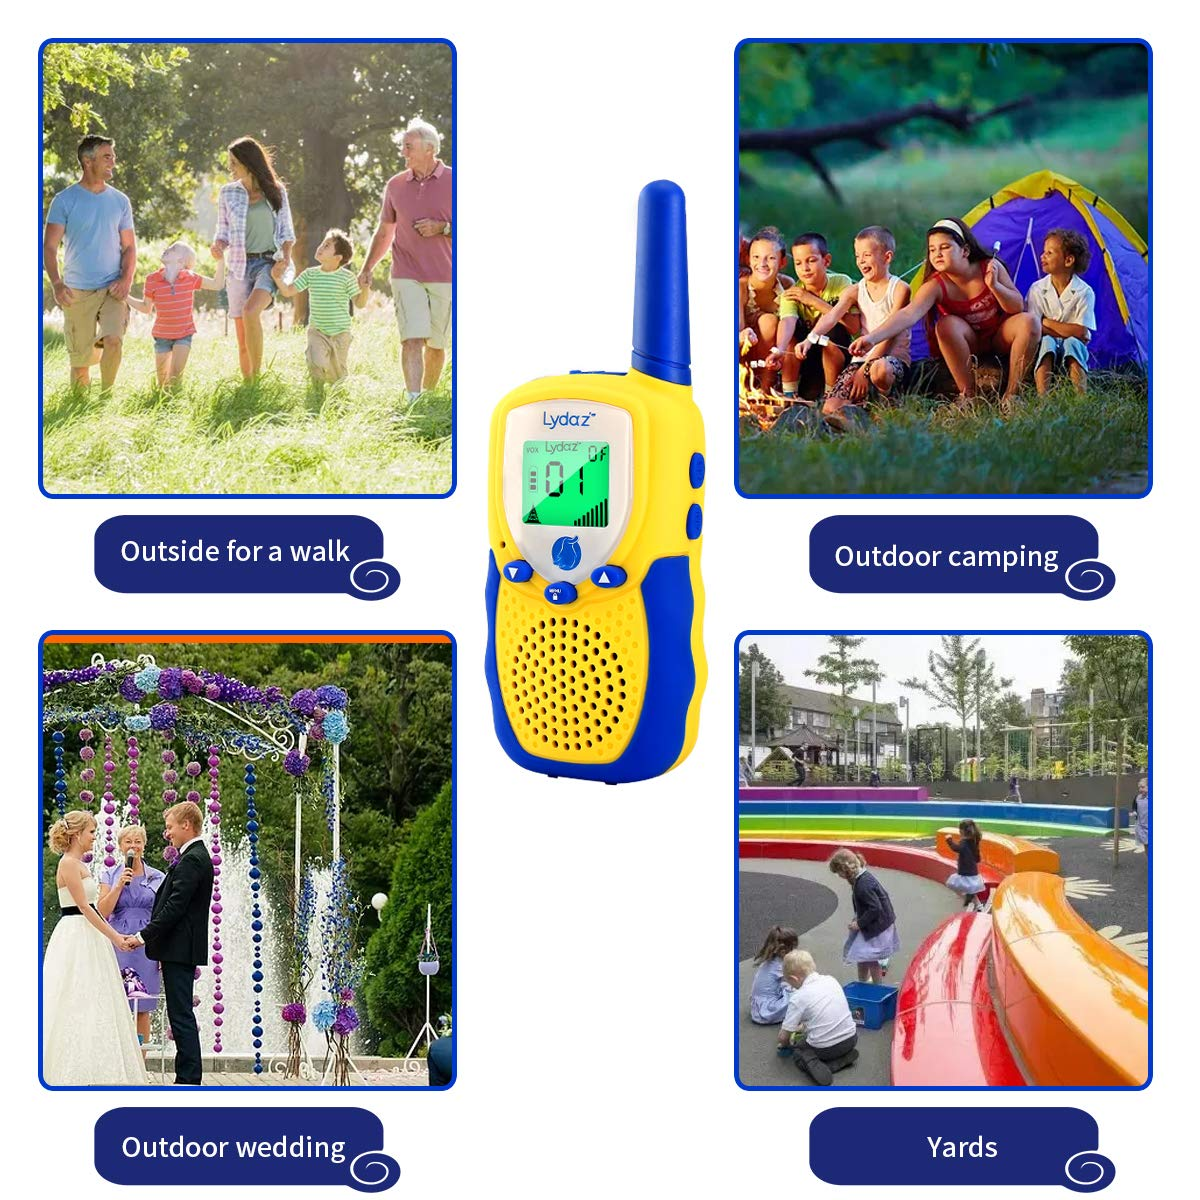 Lydaz Walkie Talkies for Kids, 22 Channels 3 Miles Long Range Electronic Two Way Radios with Rubber Finishing, Indoor Outdoor Play Adventure Toys Gift for Boys Girls Age 3 4 5 6 7 8 9 10 Years Old by Lydaz (Image #5)